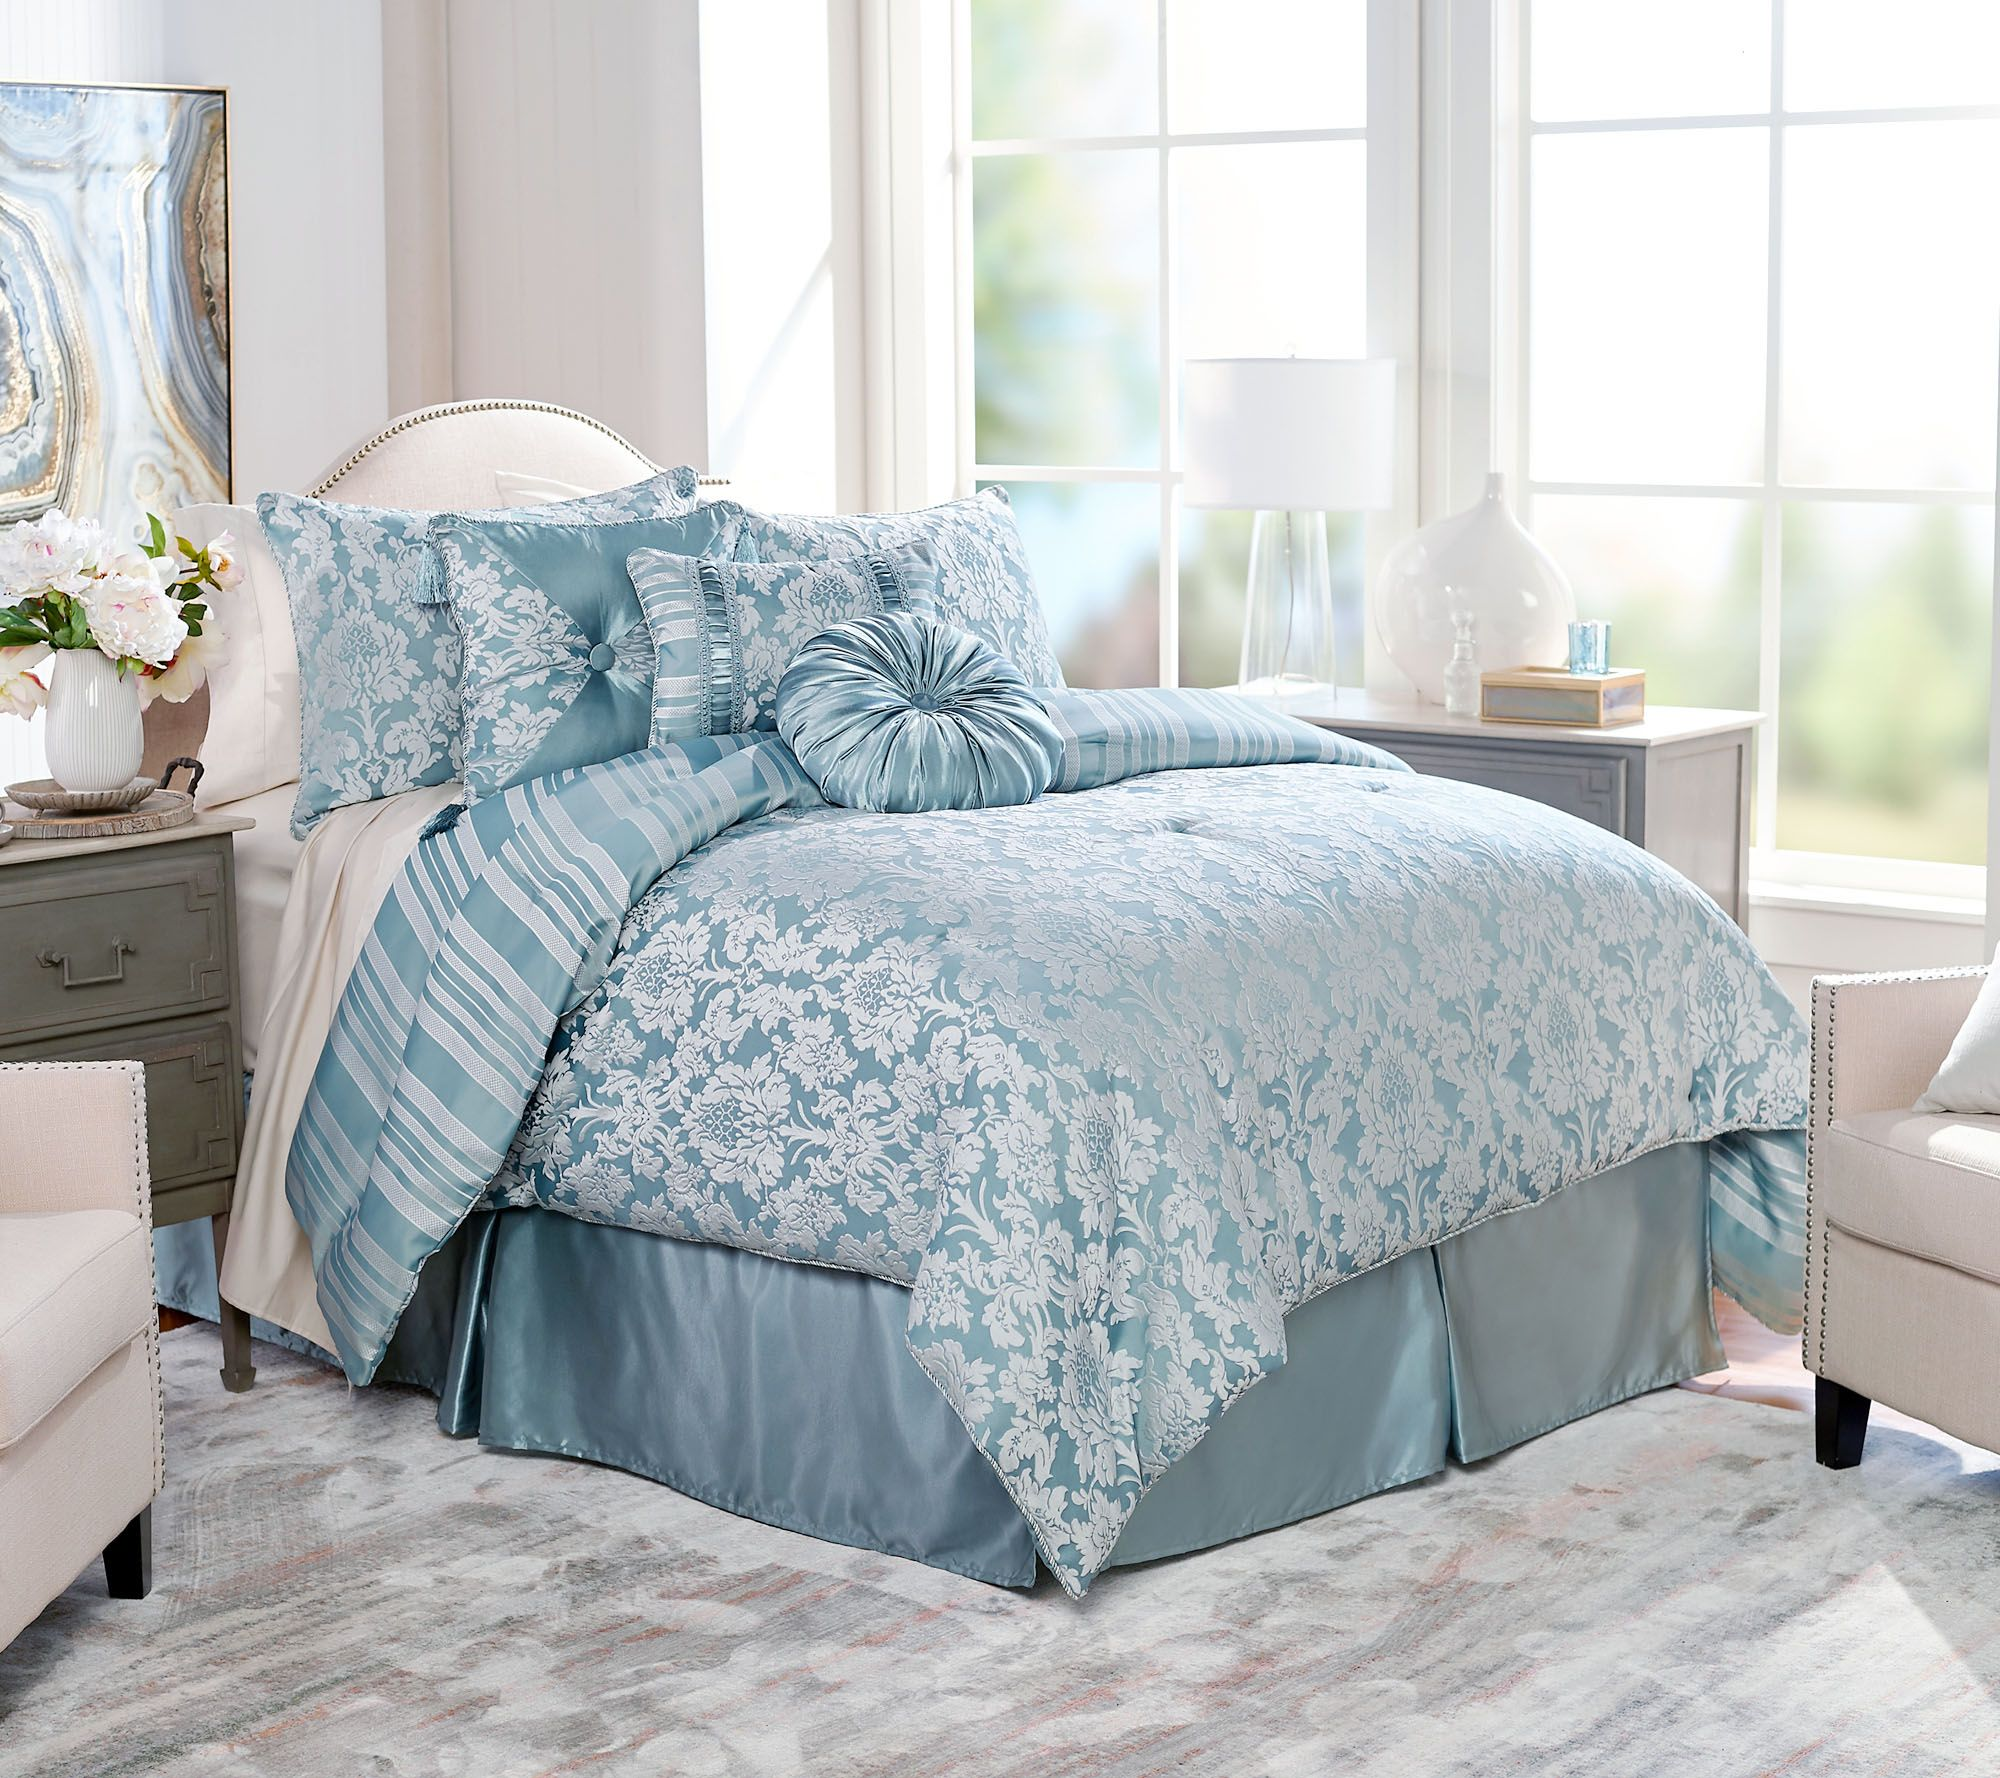 home espan navy sets designer beautiful quilt contemporary visionexchange royal full print down textiles printed of soho bedding size set and duck us cover covers teal sale king zebra exquisite blue linen pink egg black white duvets duvet the queen for co comforter